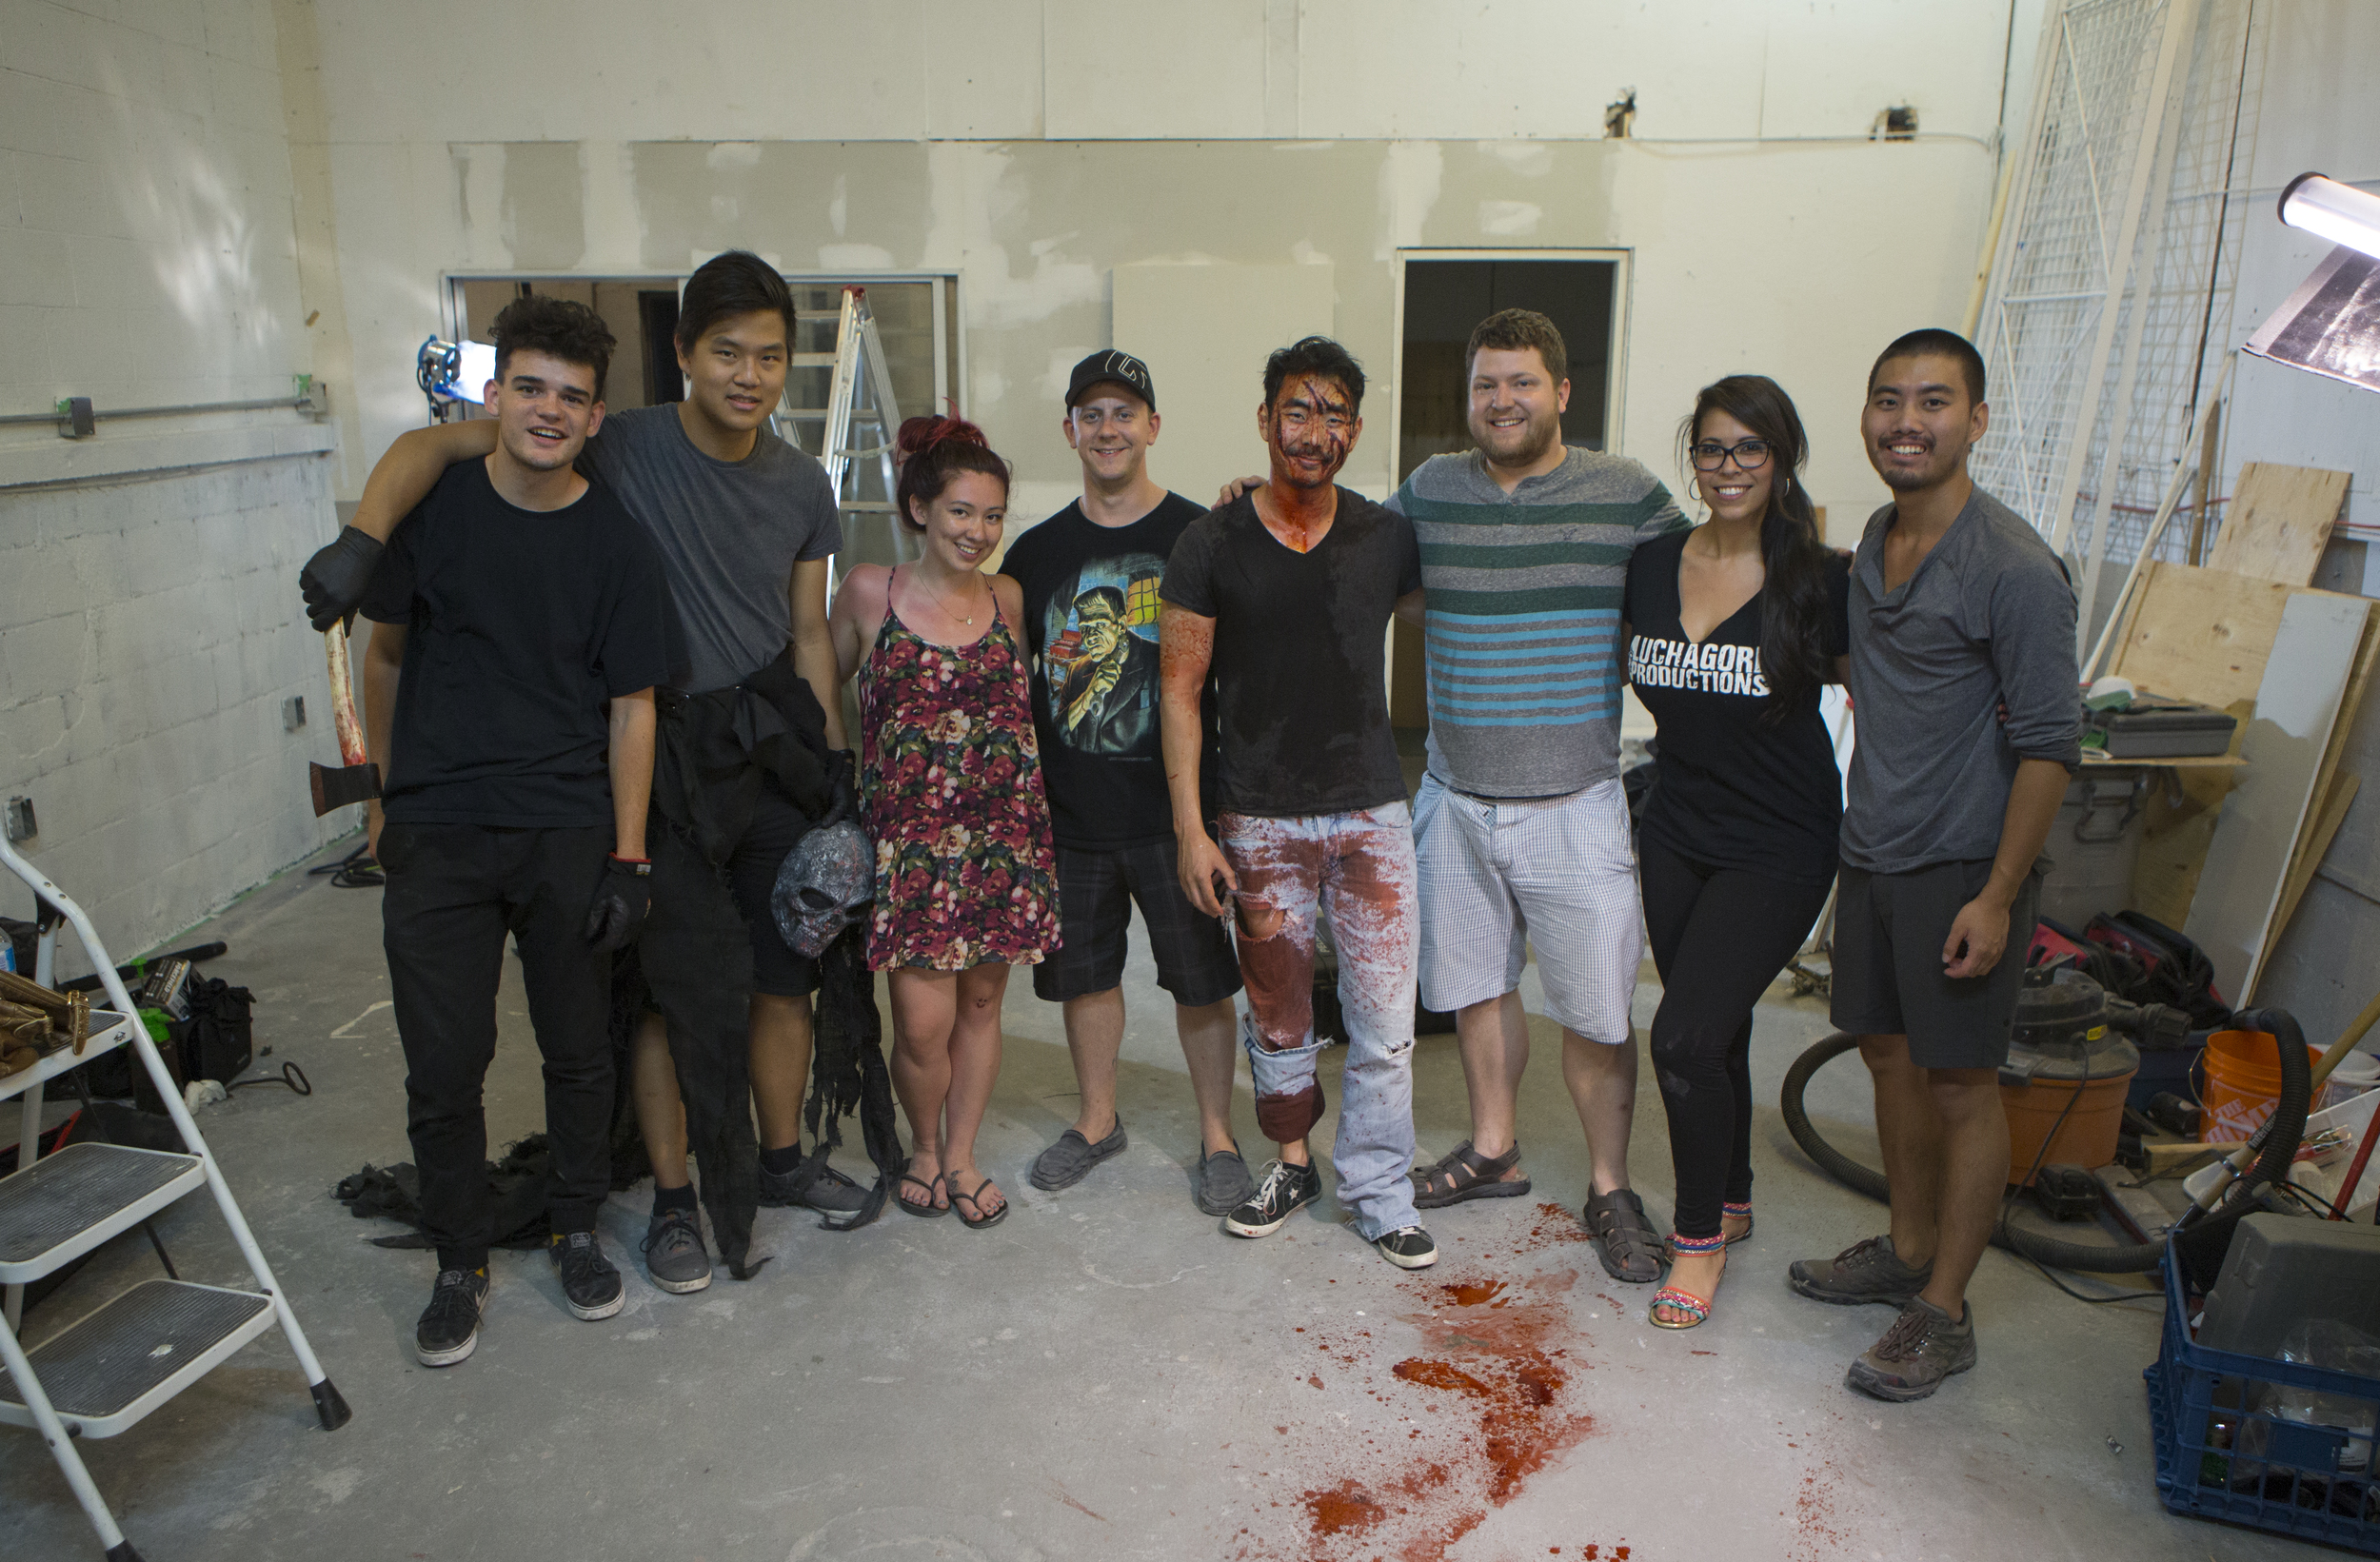 """The Cast & Crew of """"Run & Gun: Horror Promo"""". From left to rightDylanMcGale (Sound/Lighting), Nach Dudsdeemaytha (Producer/Lighting/Monster),  AkinaMcCrea (Special Effects Makeup),DallasHarvey (  Special Effects Makeup), Lee Shorten (Actor), Joel Ashton McCarthy (Producer/Writer/Director), Gigi Saul Guerrero (Actor),Charles Chen (Producer/DOP)"""